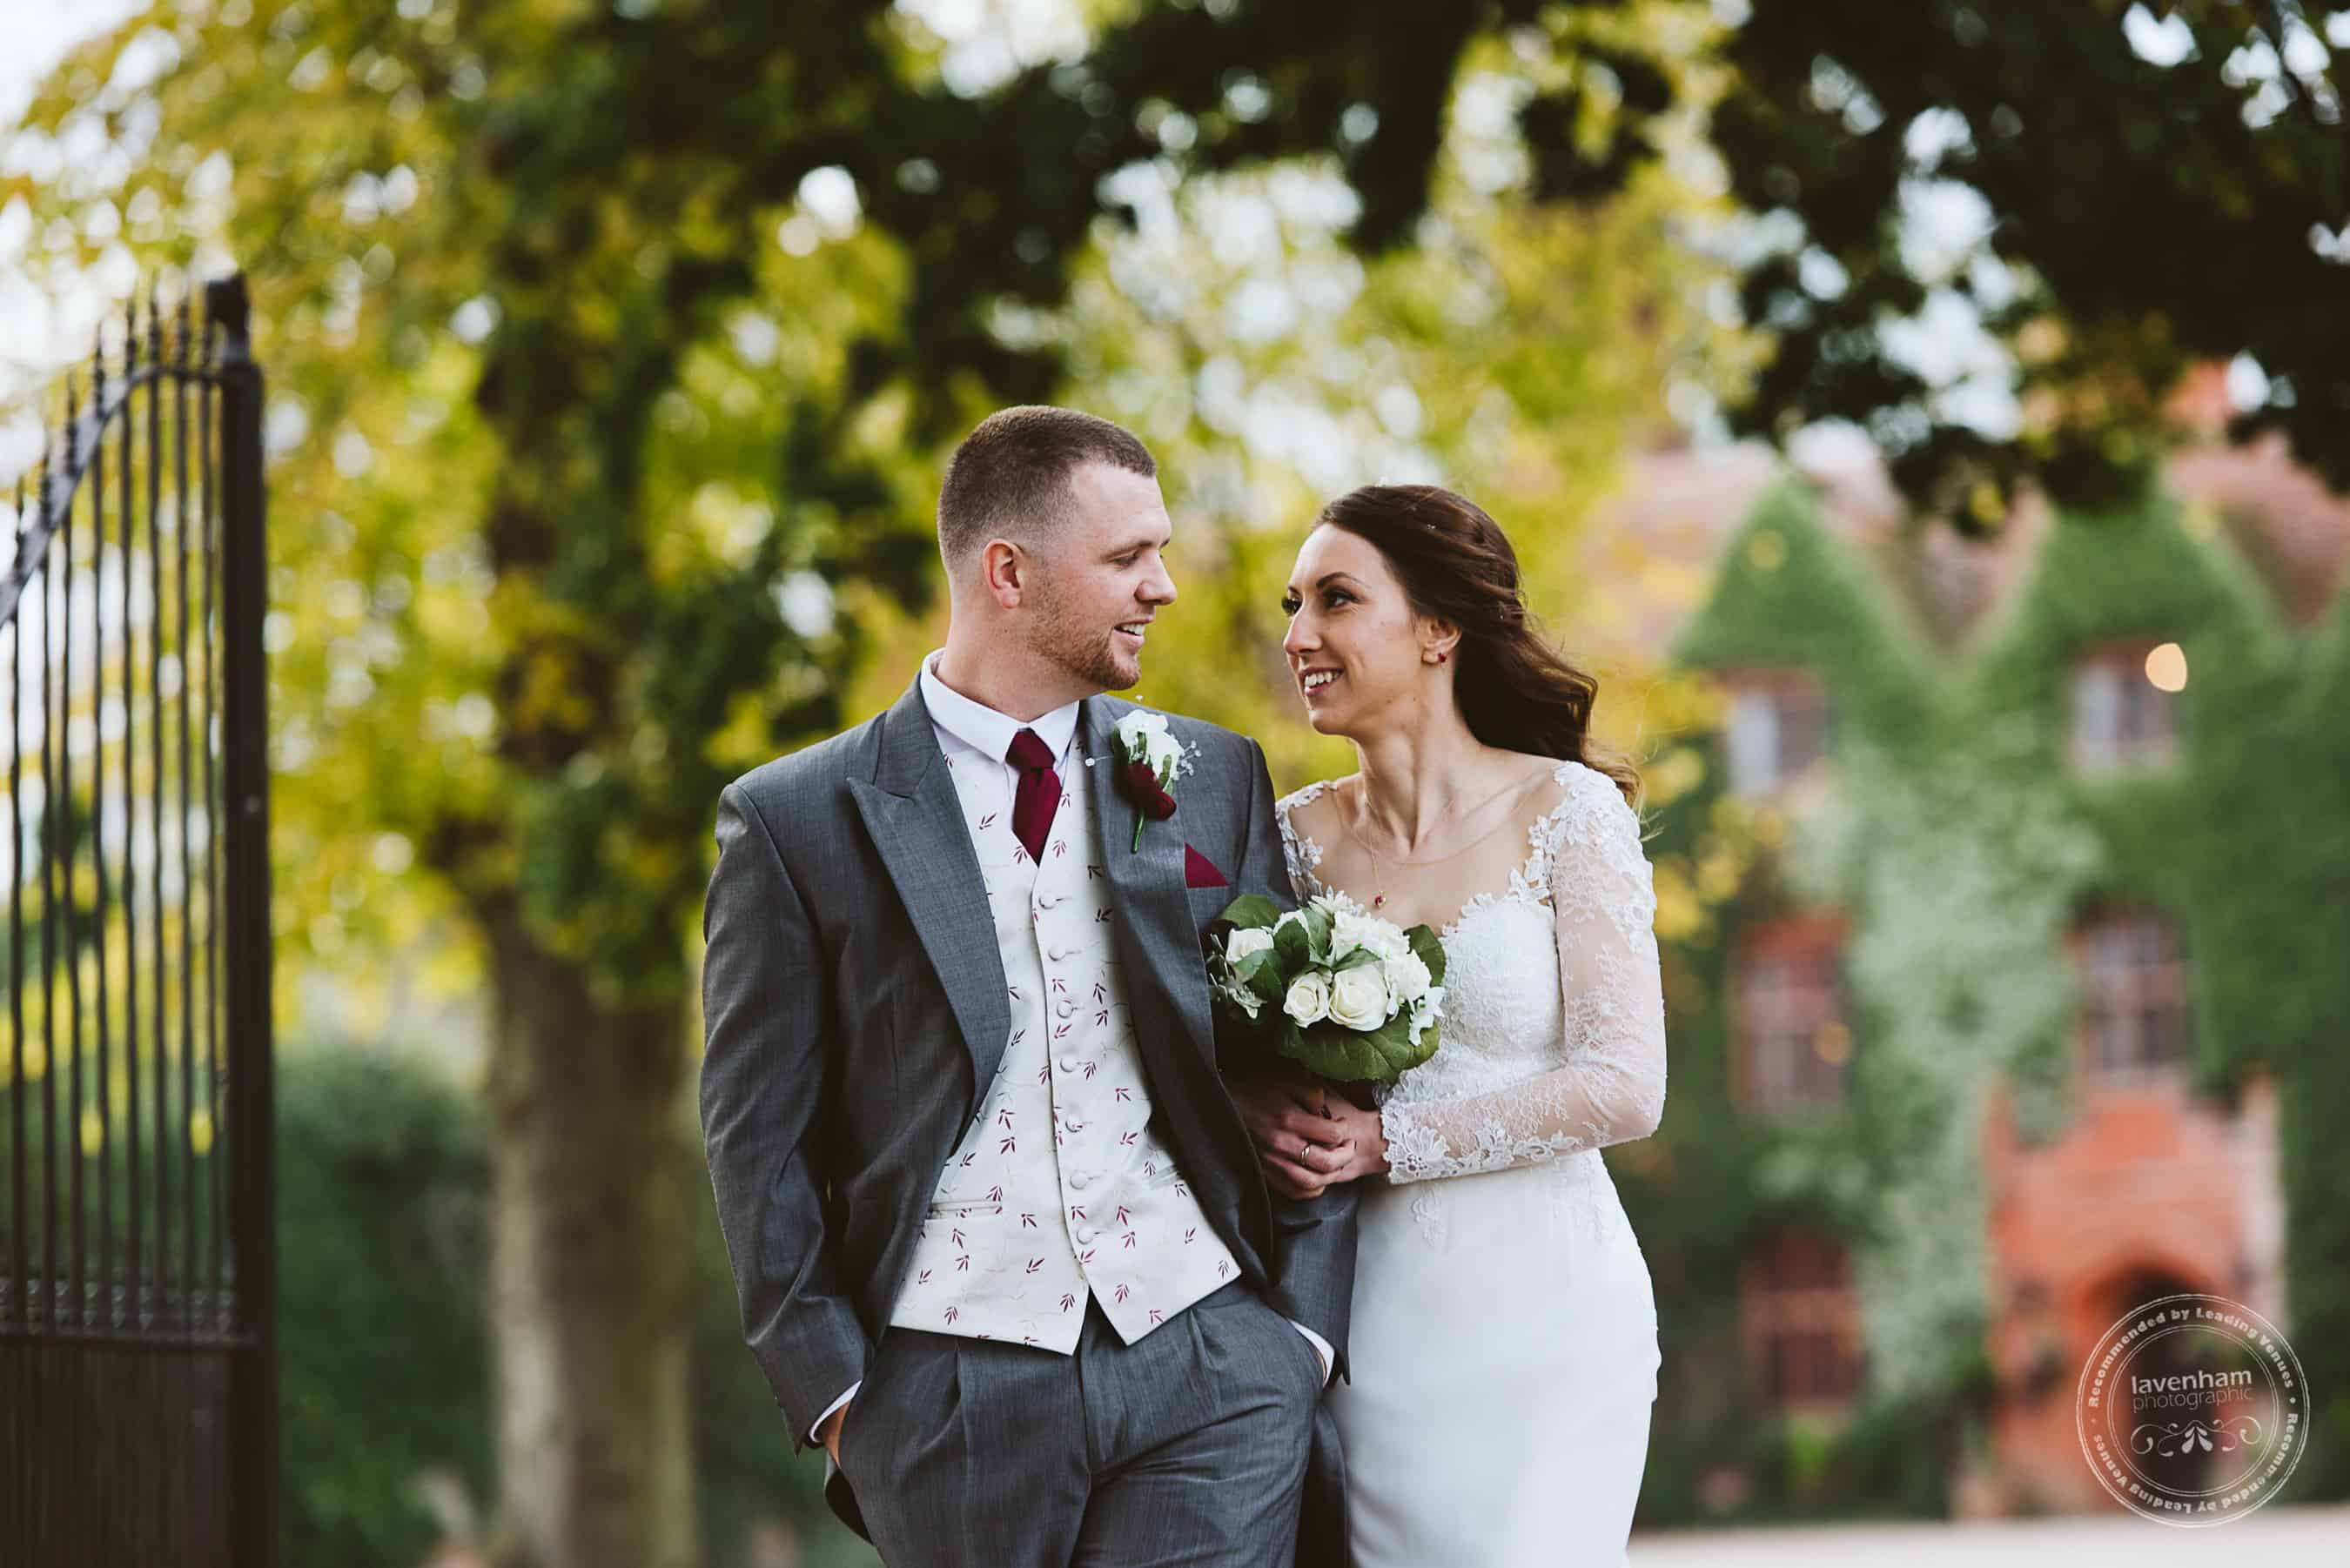 041118 Woodhall Manor Wedding Photography by Lavenham Photographic 101